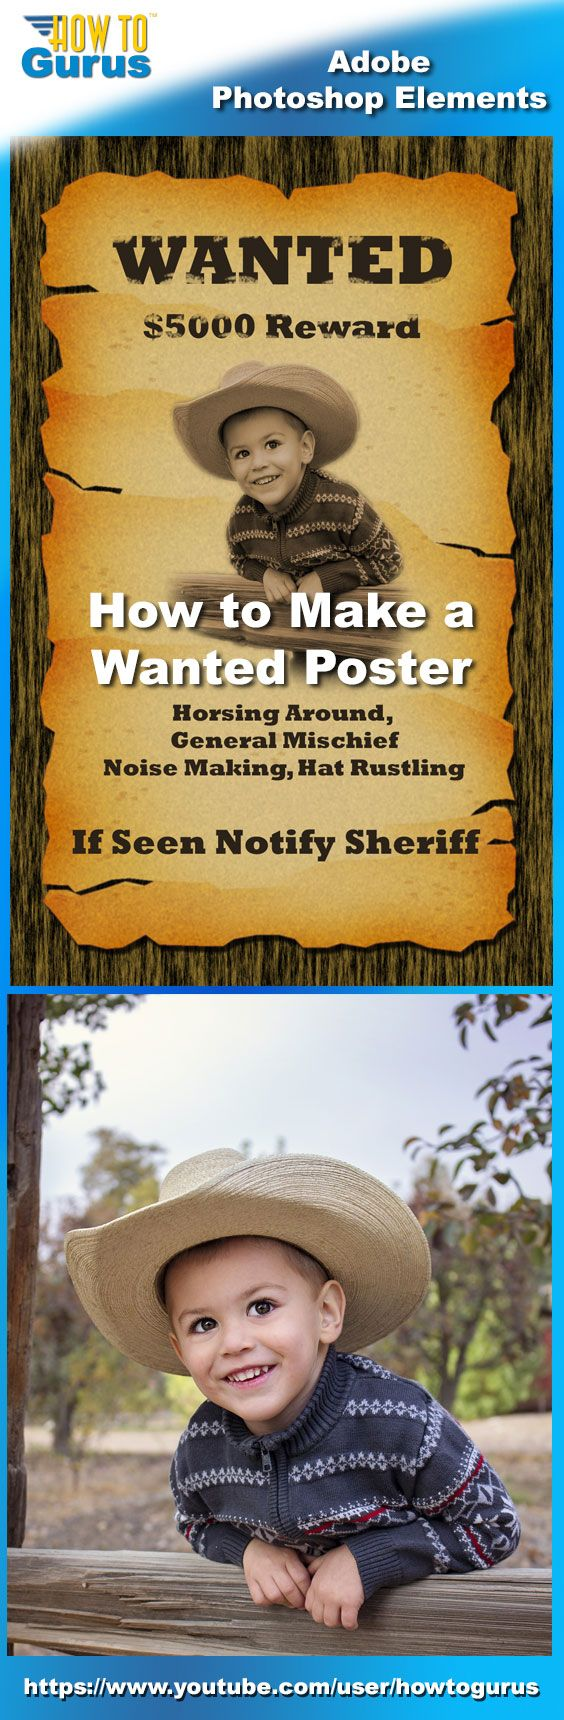 How to fix color cast in photoshop elements - How To Make A Wanted Poster From A Photograph In Adobe Photoshop Elements 15 14 13